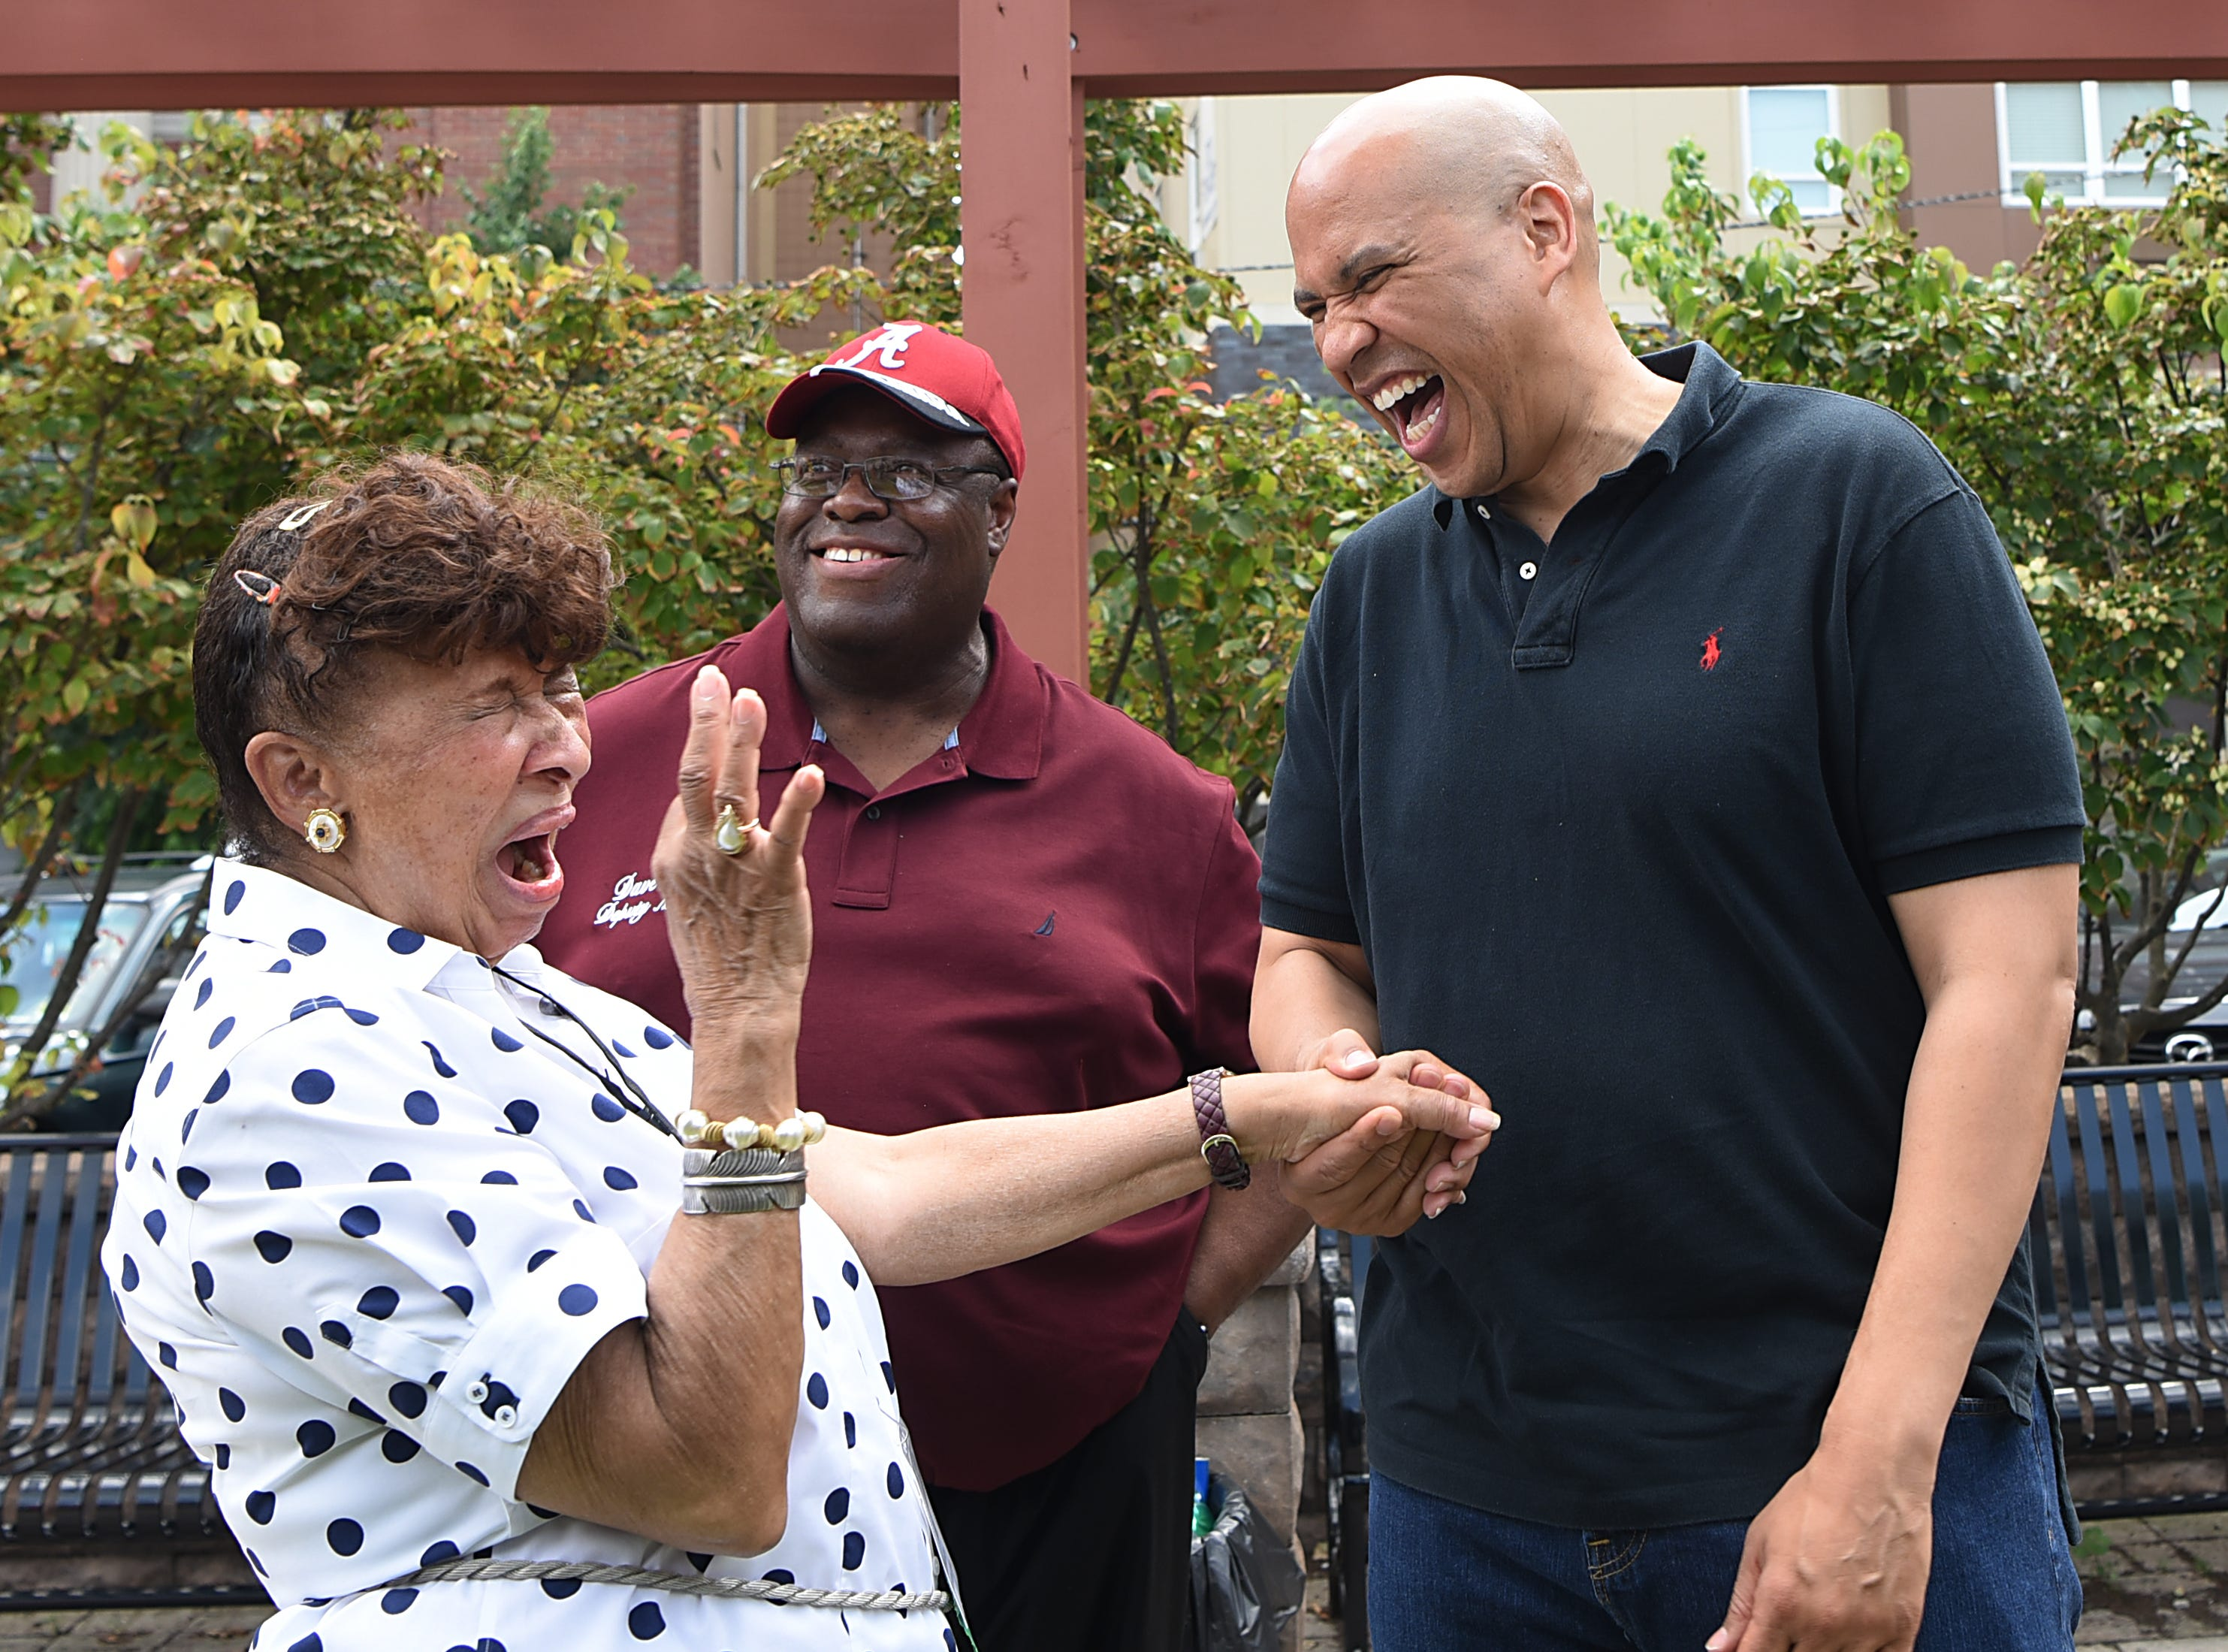 Lee Porter and Senator Cory Booker share a laugh along with Dave Sims. Fair Housing Council of Northern New Jersey holds a picnic in Hackensack on Friday August 10, 2018.